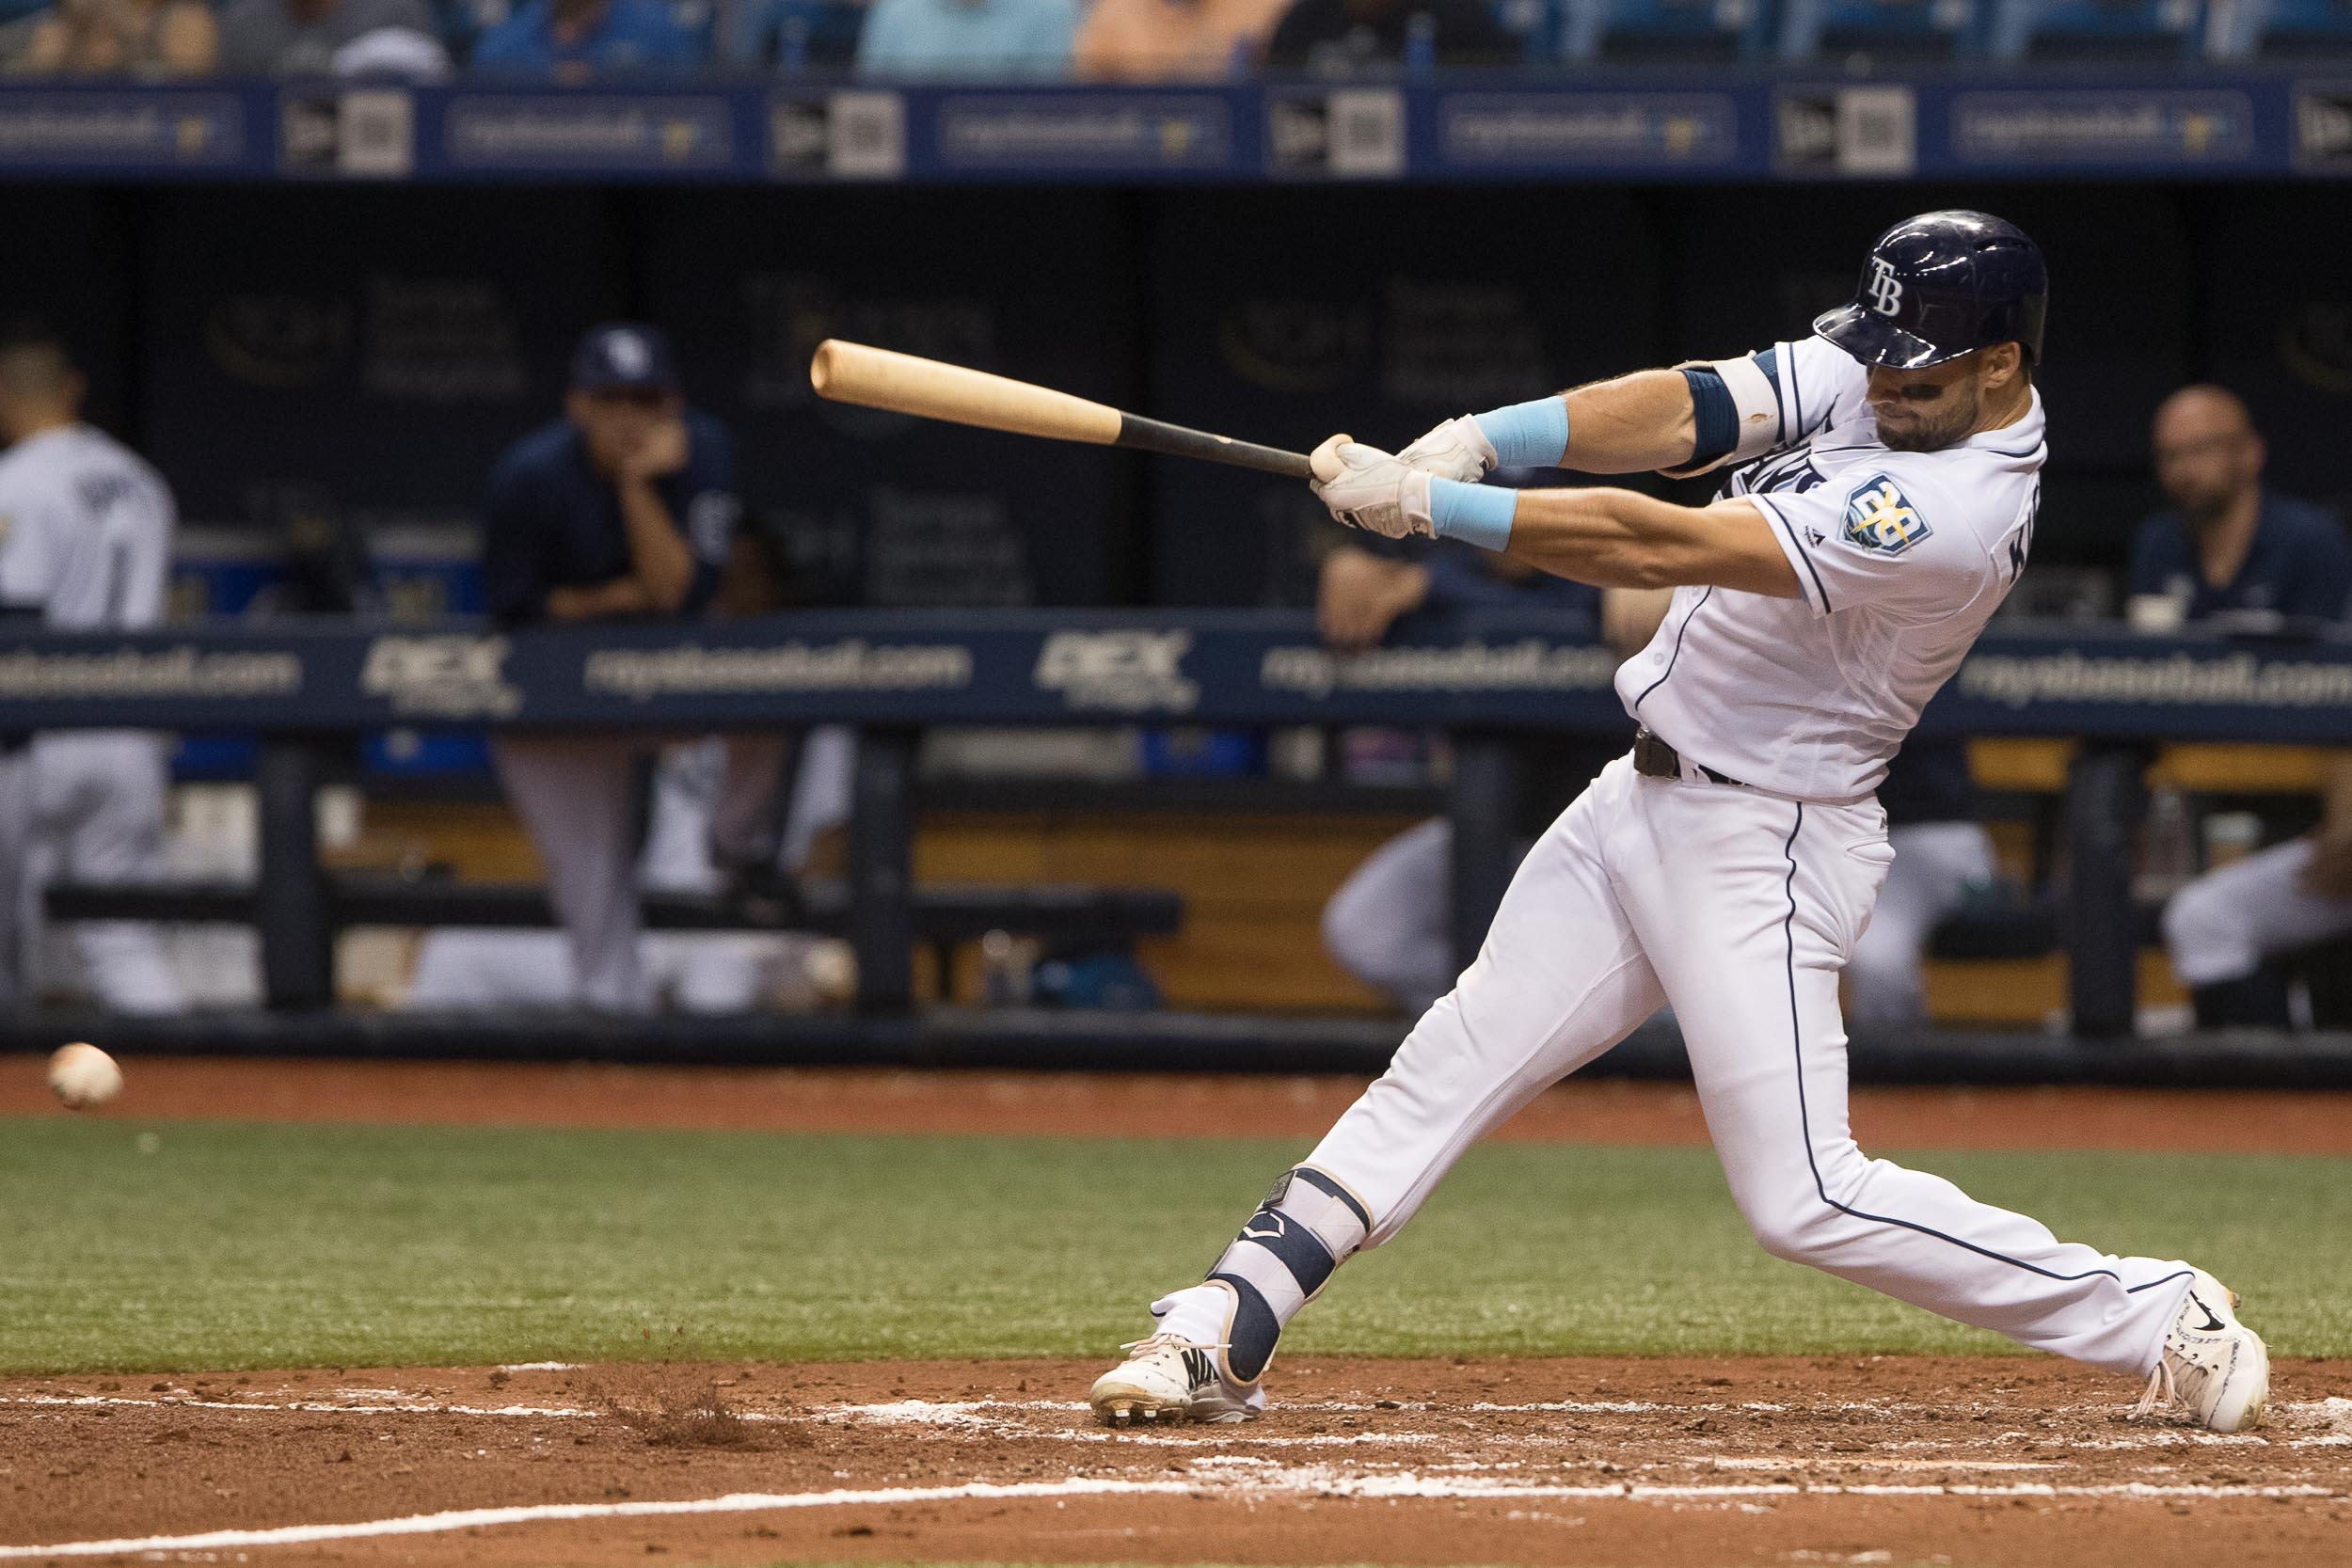 Two runs scored when Kevin Kiermaier reached on an error../STEVEN MUNICE